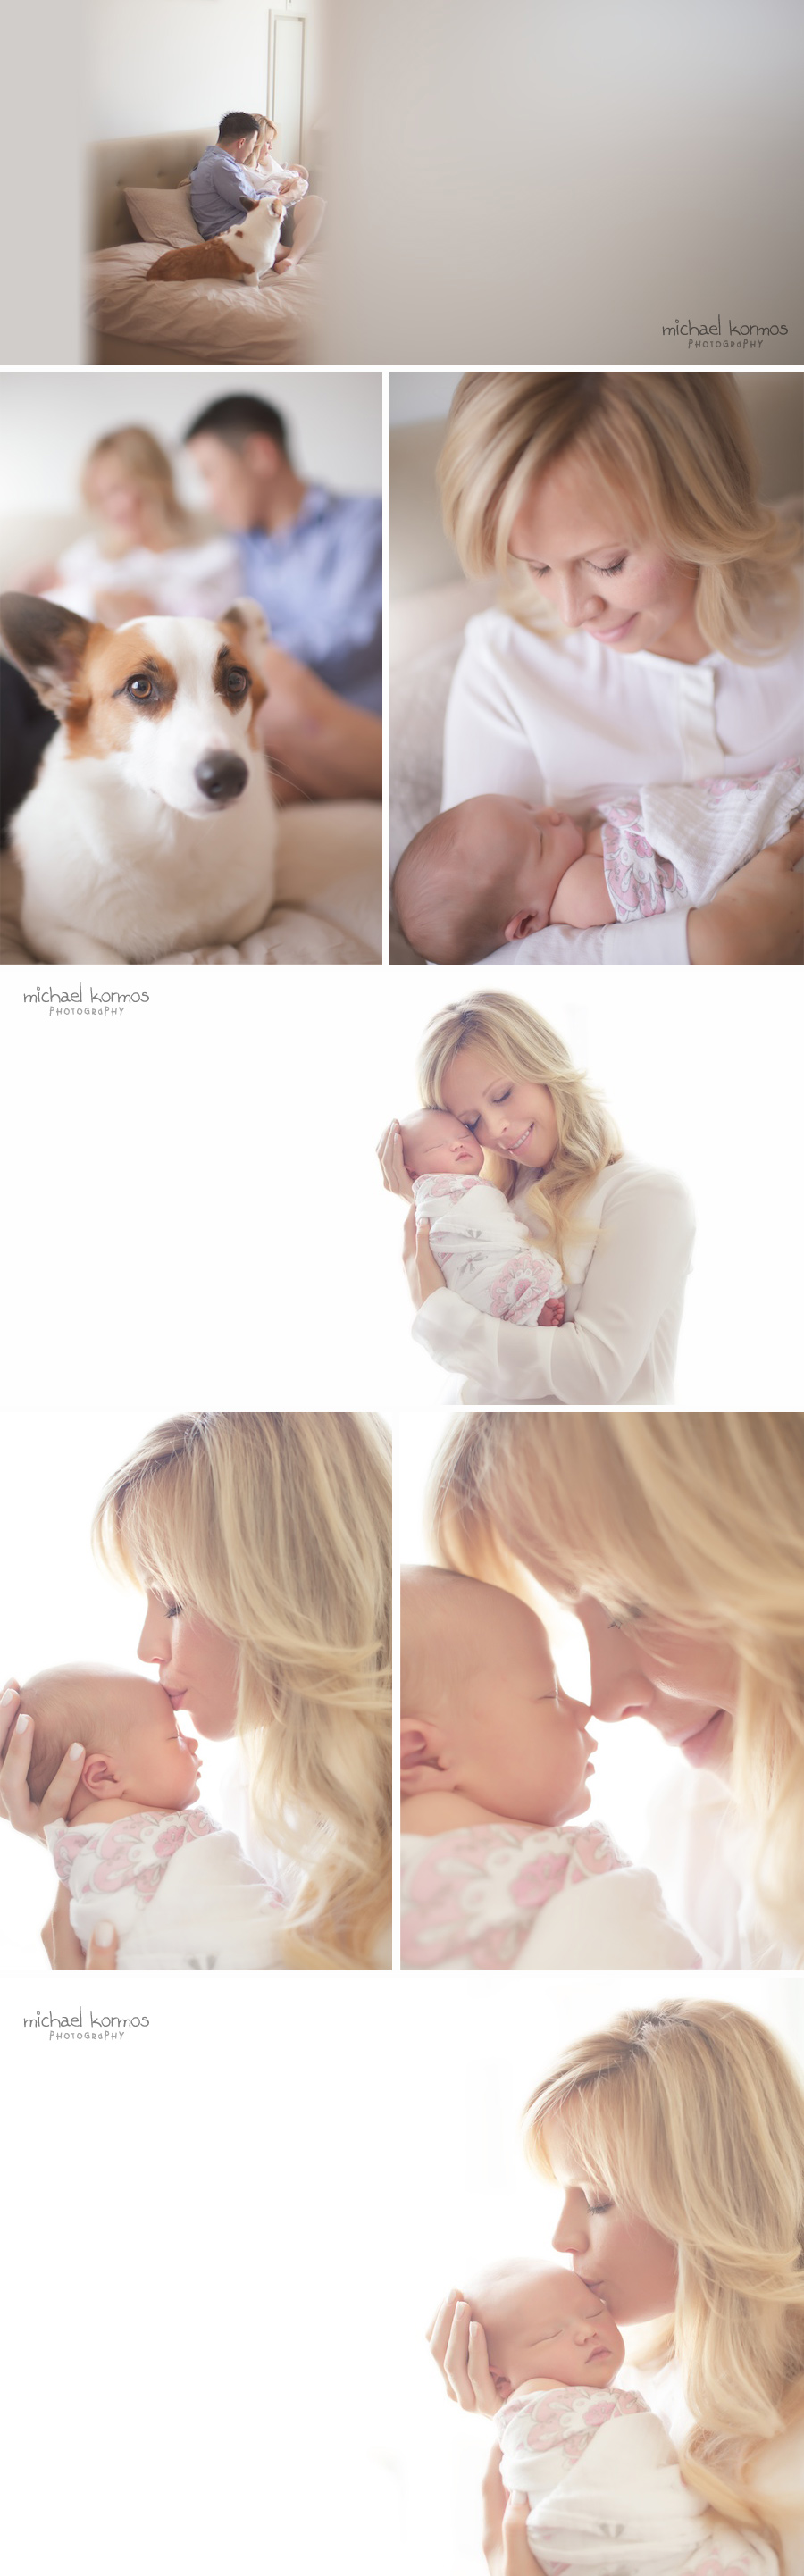 NYC Photo: Mother truly glows with the happiness of a brand new bundle of joy in her arms